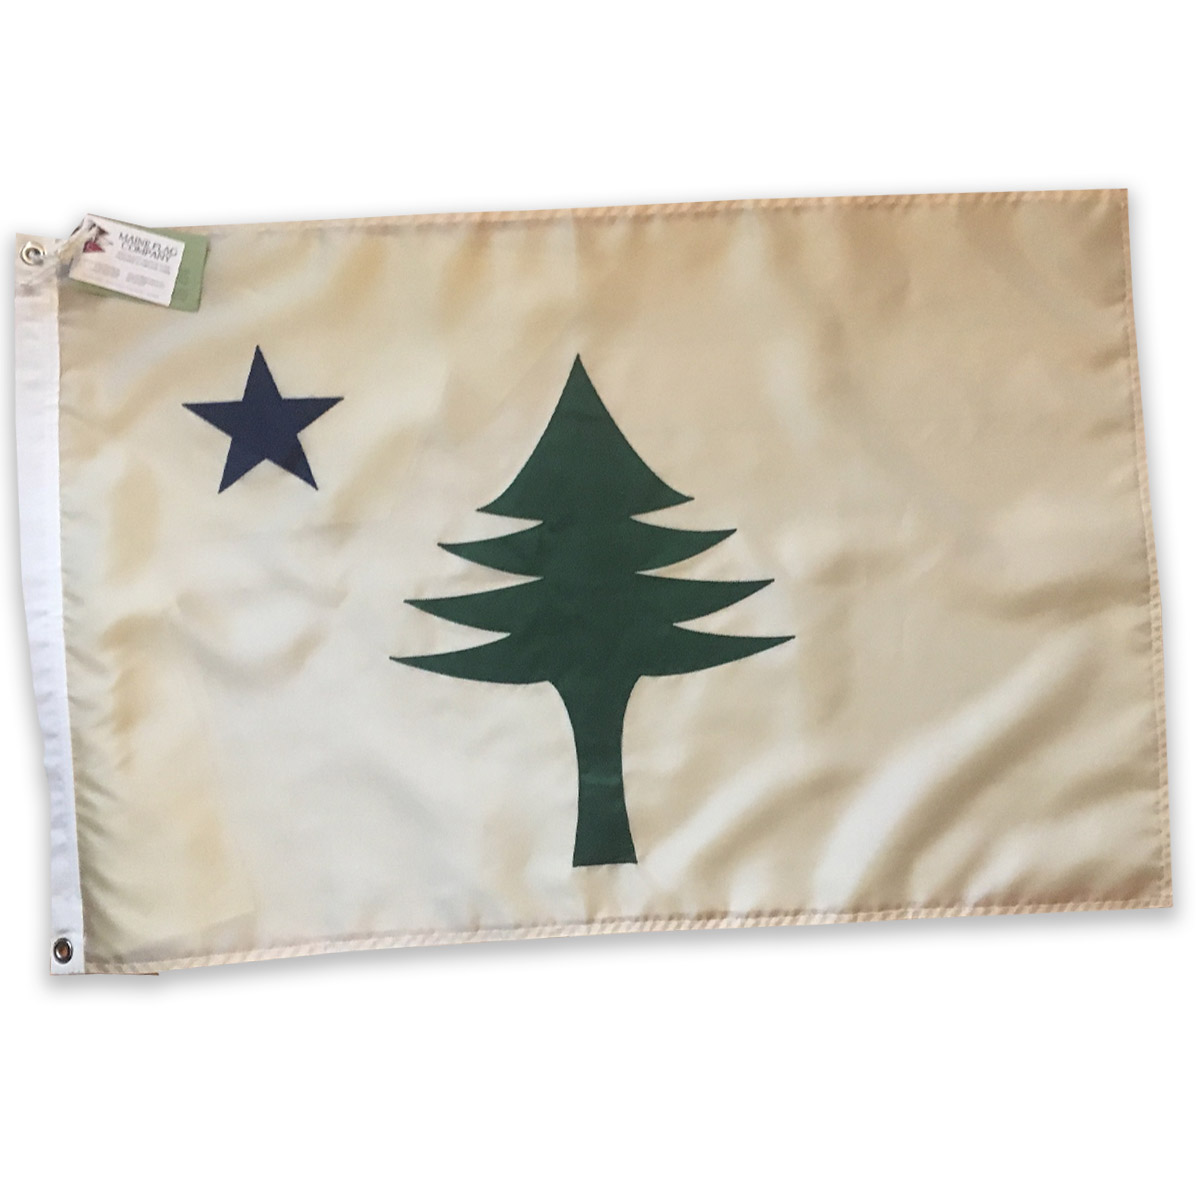 "Original Maine State Flag - Crafted by the Maine Flag Company in Portland, this re-creation of our great State's original flag (1901-1909) was generously provided by the Lincoln family. Perfect for indoor or outdoor use, measuring 24"" x 36"".Retail Value: $70.00"